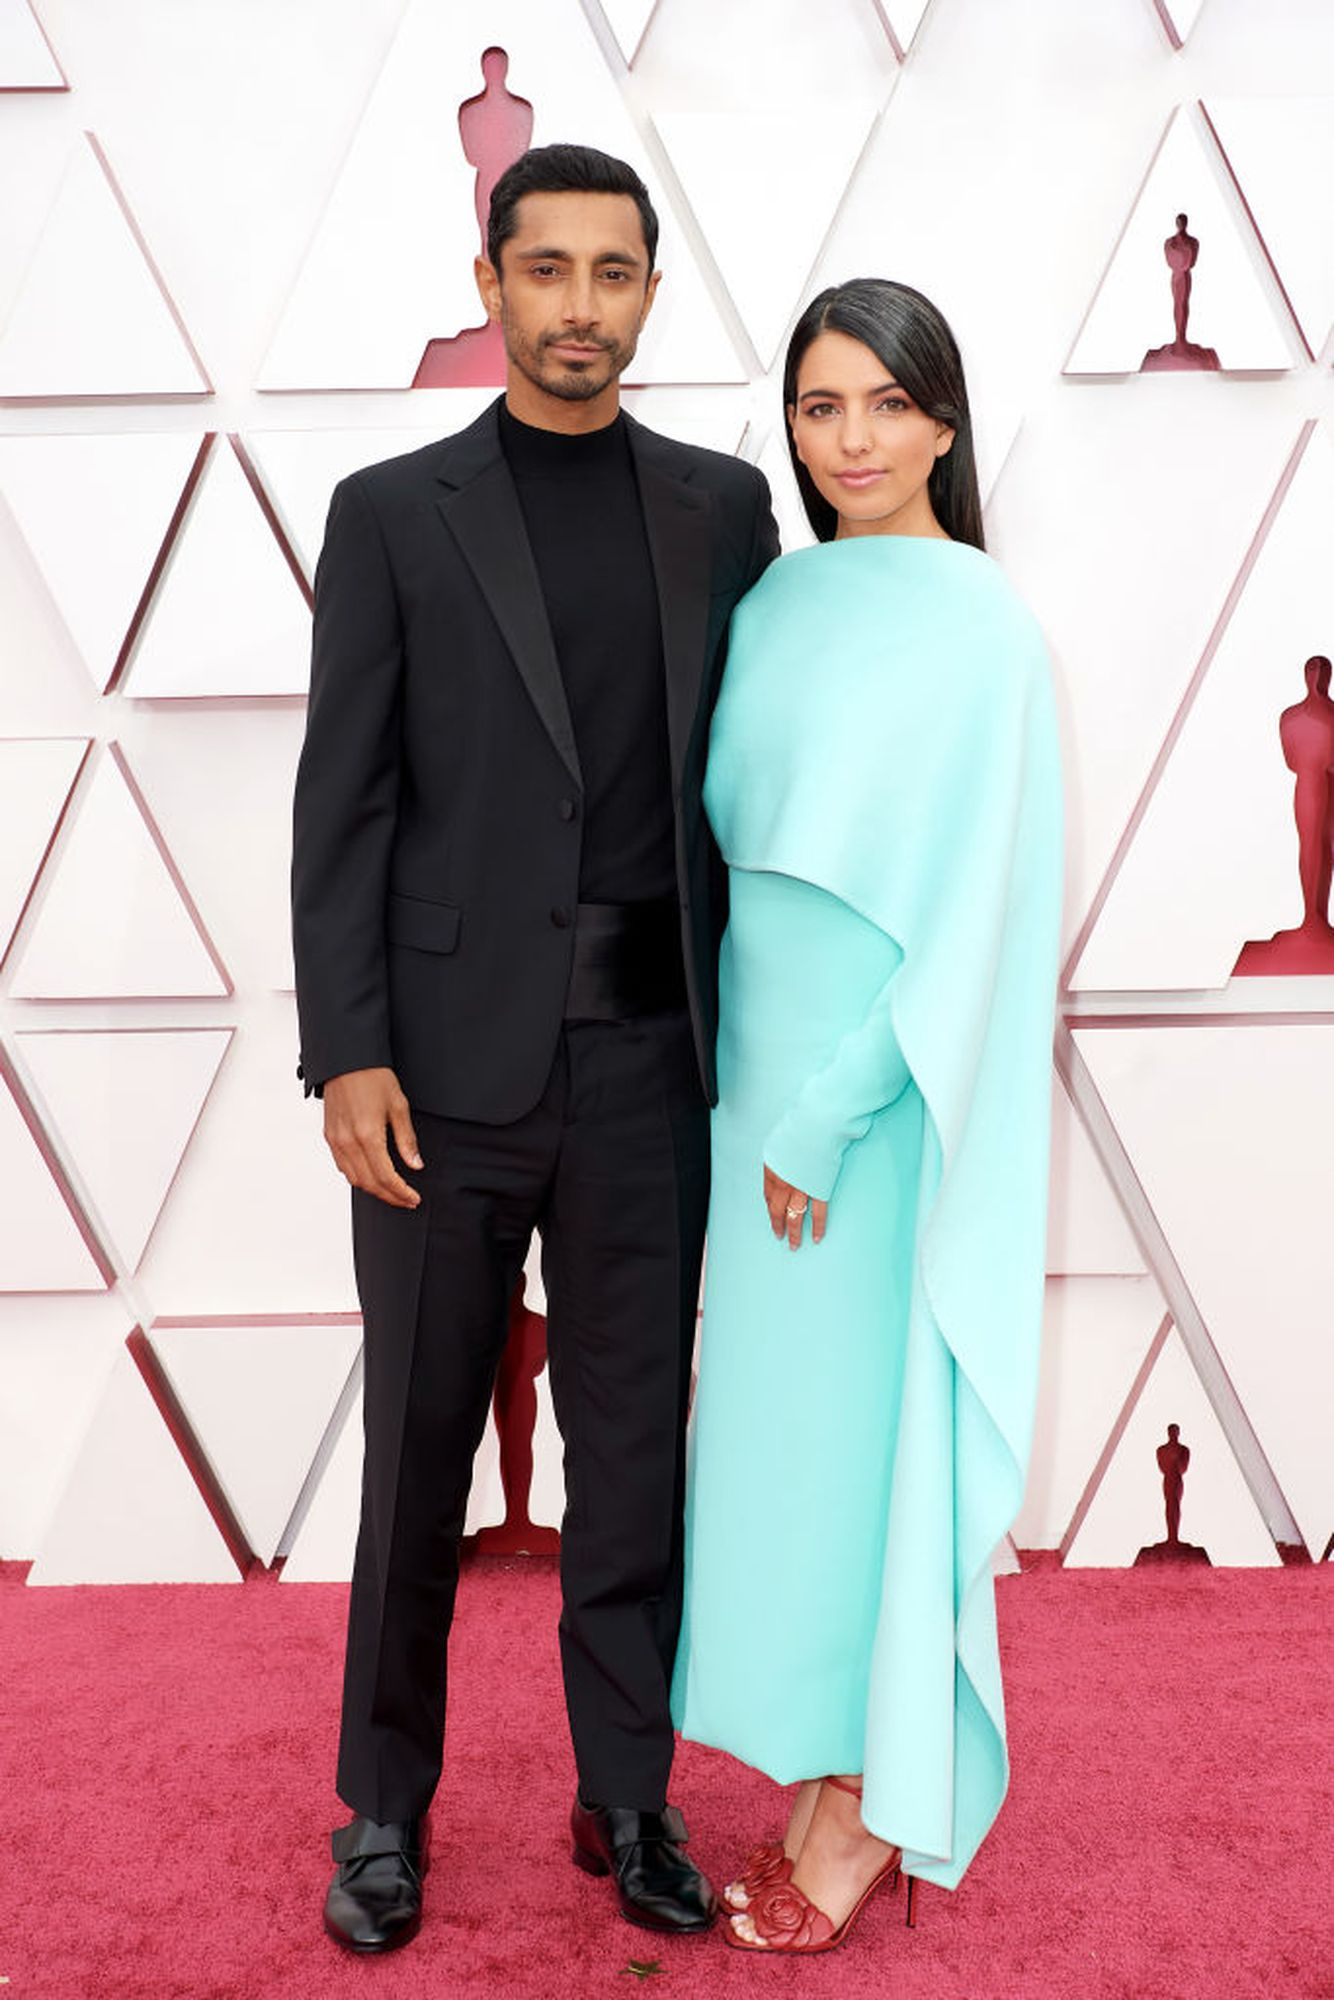 LOS ANGELES, CA - APRIL 25: (For editorial use only) In this posted photo provided by AMPAS, Riz Ahmed and Fatimah Farahin Mirza attended the 93rd Annual Academy Awards at Union Station on April 25, 2021 in Los Angeles, California.  (Photo by Matt Beatty / AMPAS via Getty Images)